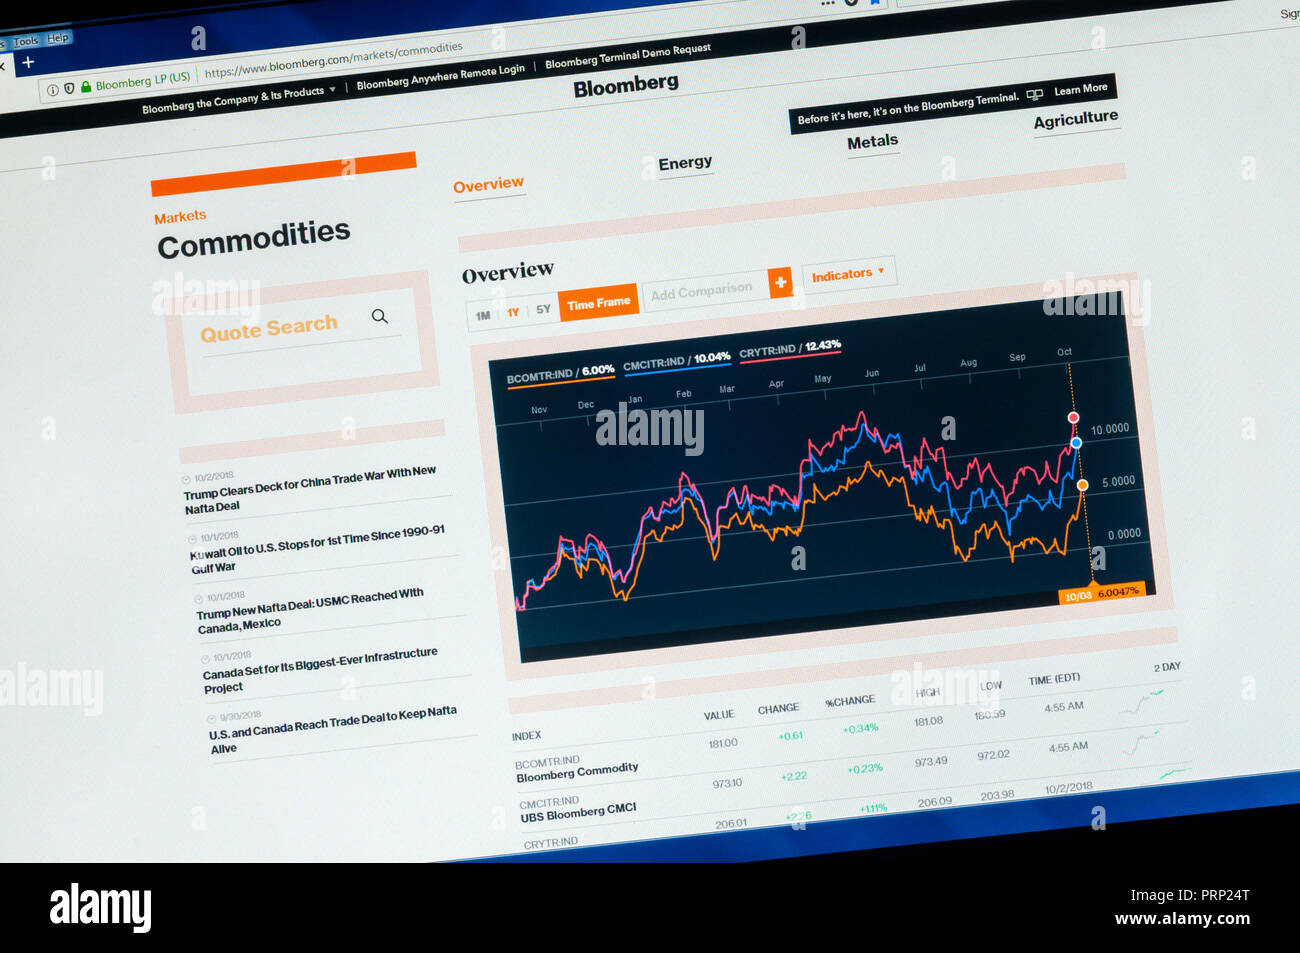 Home page of the Bloomberg website showing Commodities graph. - Stock Image